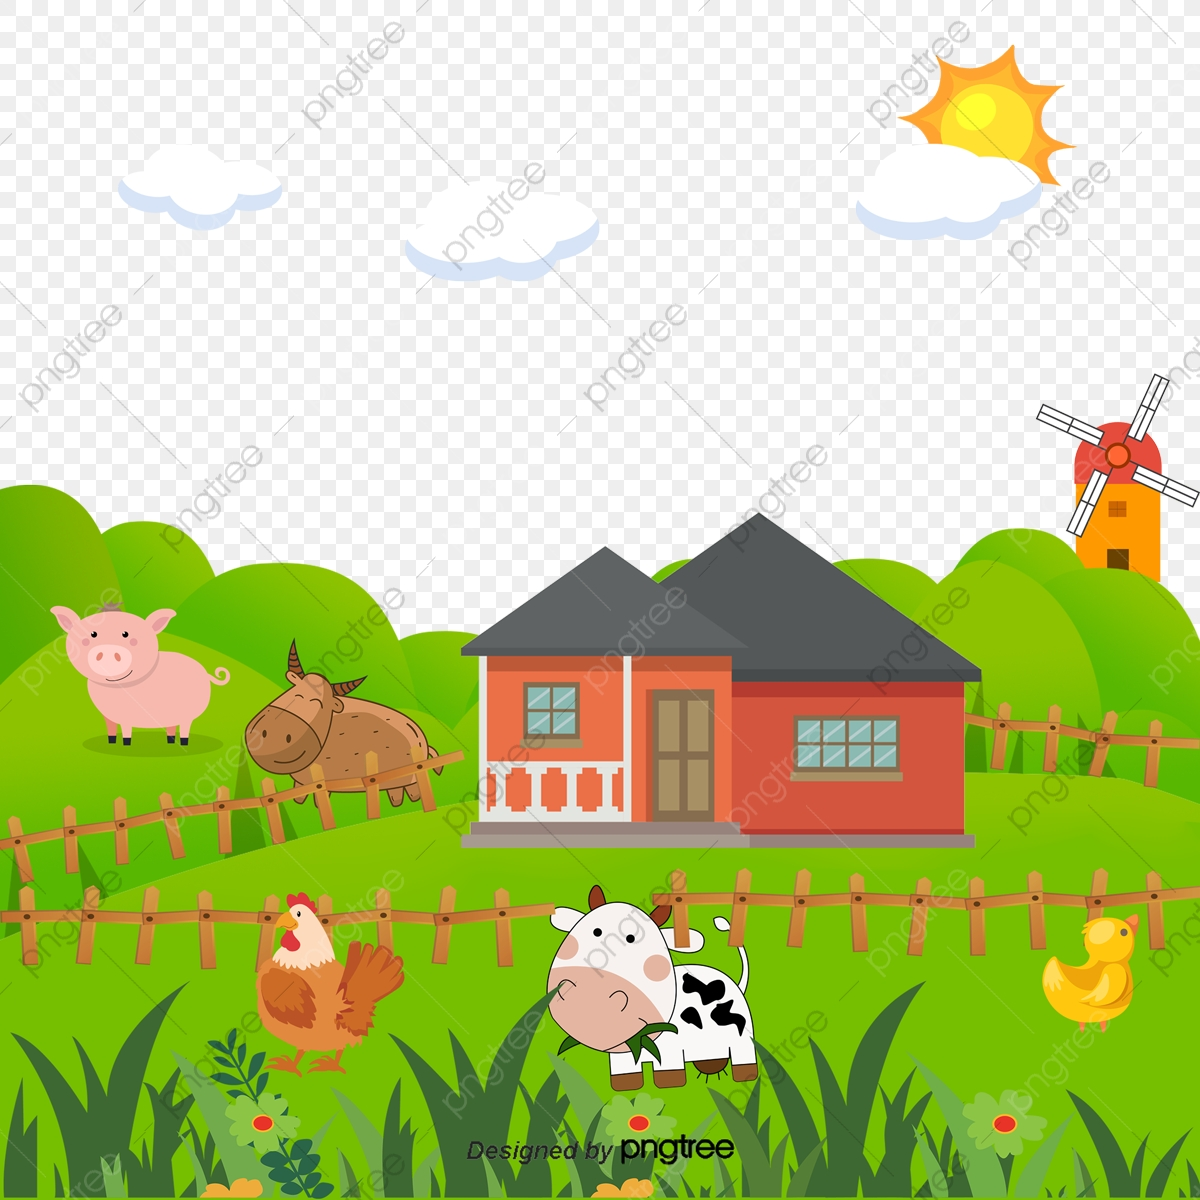 hight resolution of commercial use resource upgrade to premium plan and get license authorization upgradenow cartoon farm cartoon clipart